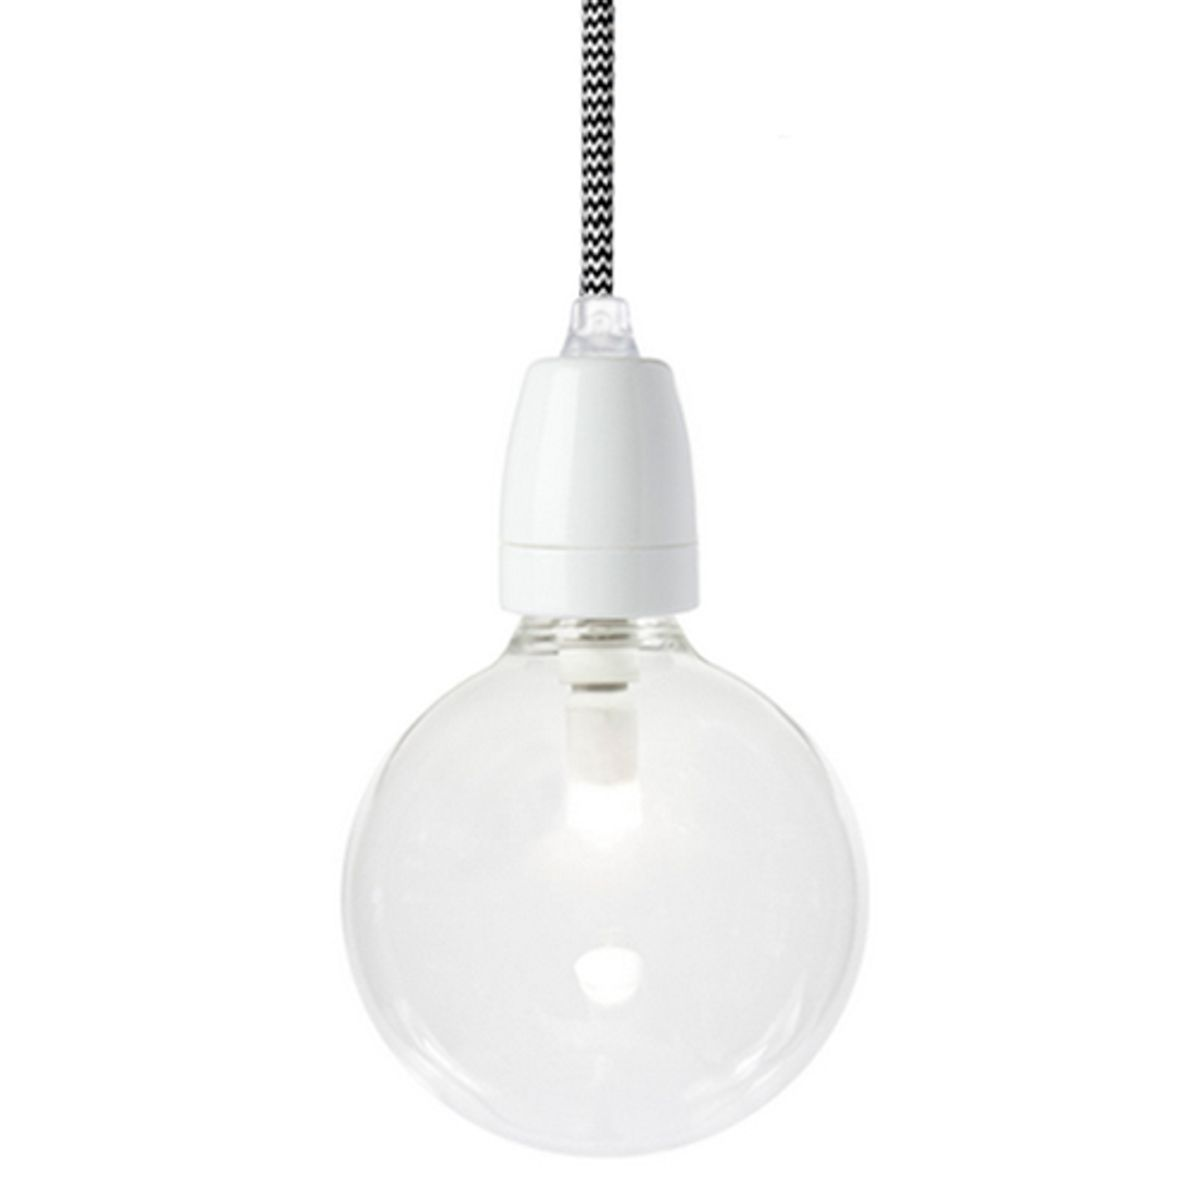 Suspension en porcelaine blanche Nud Collection